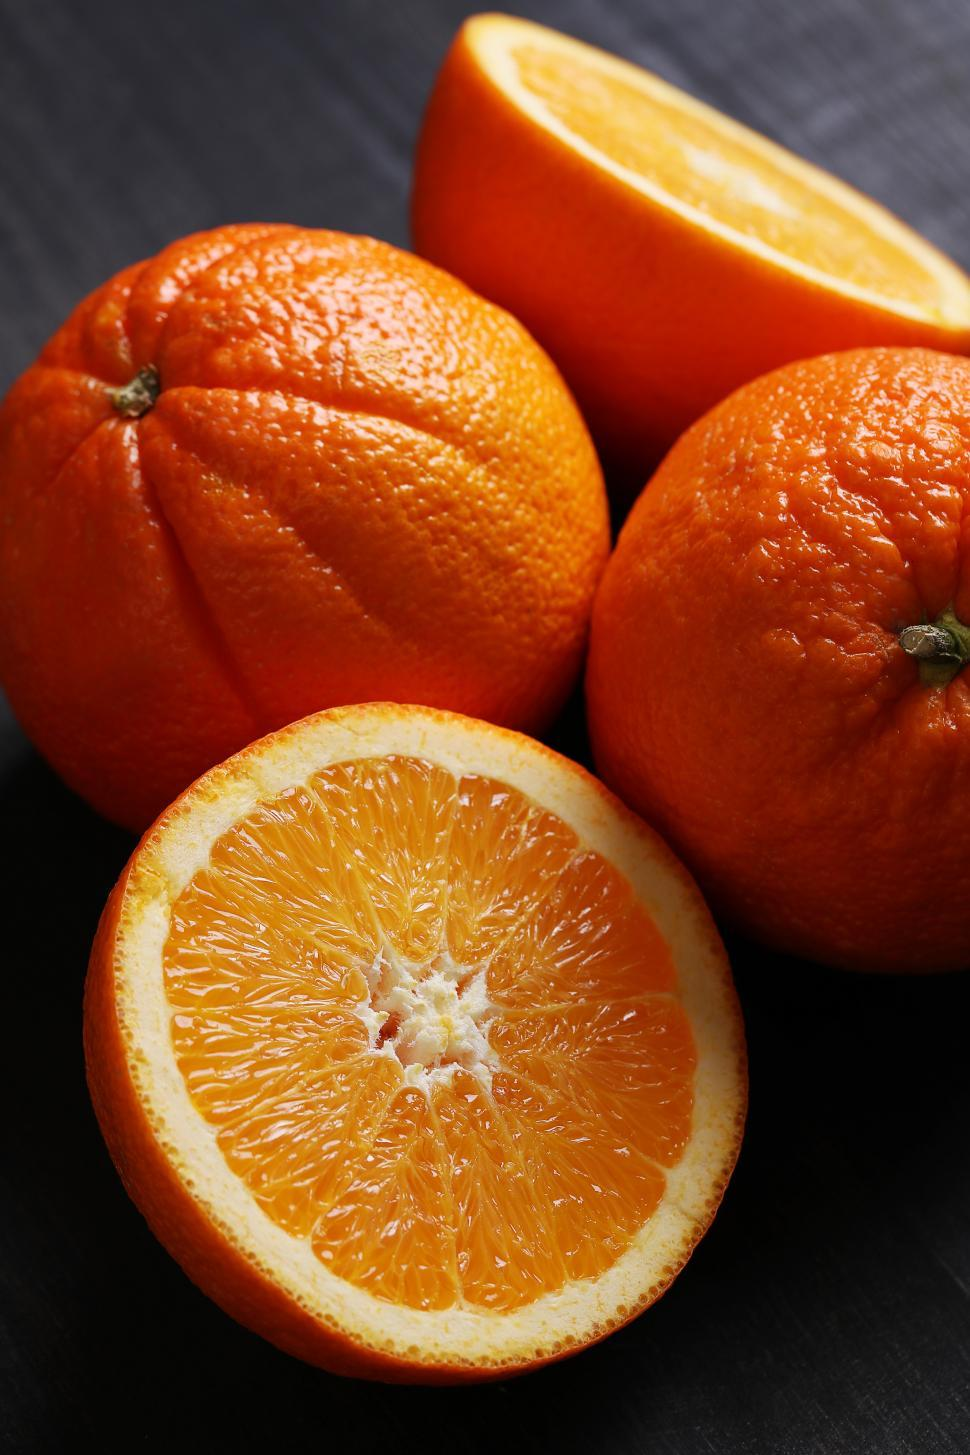 Download Free Stock Photo of Oranges, whole and halved